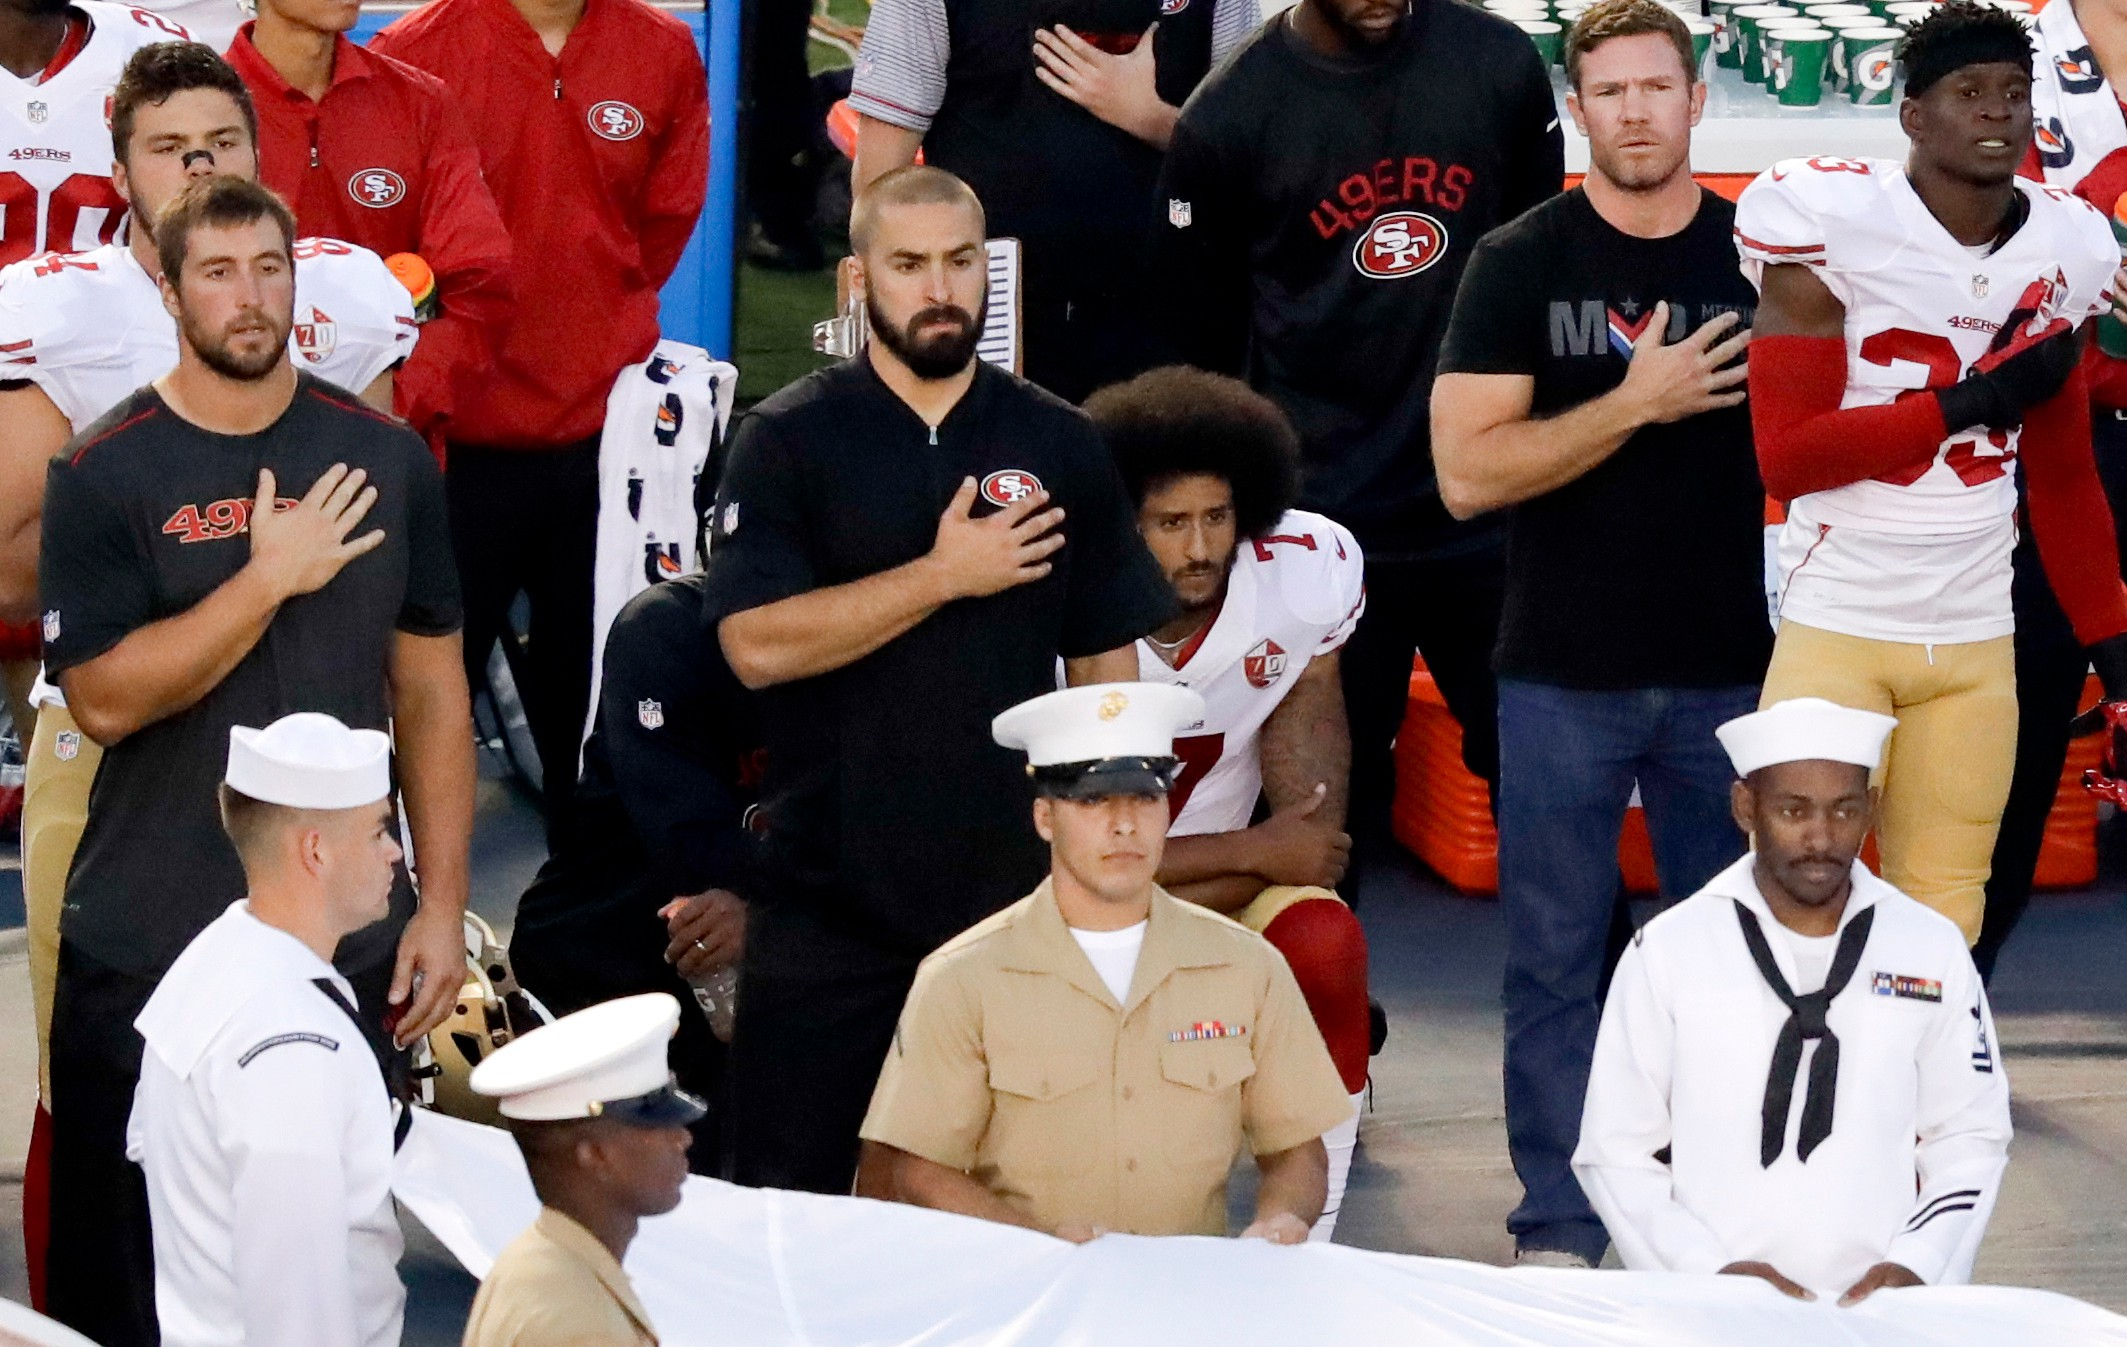 e761bc9d24cf Colin Kaepernick's choice not to stand for the national anthem is a clear  sign of protest. (AP Photo/Chris Carlson)